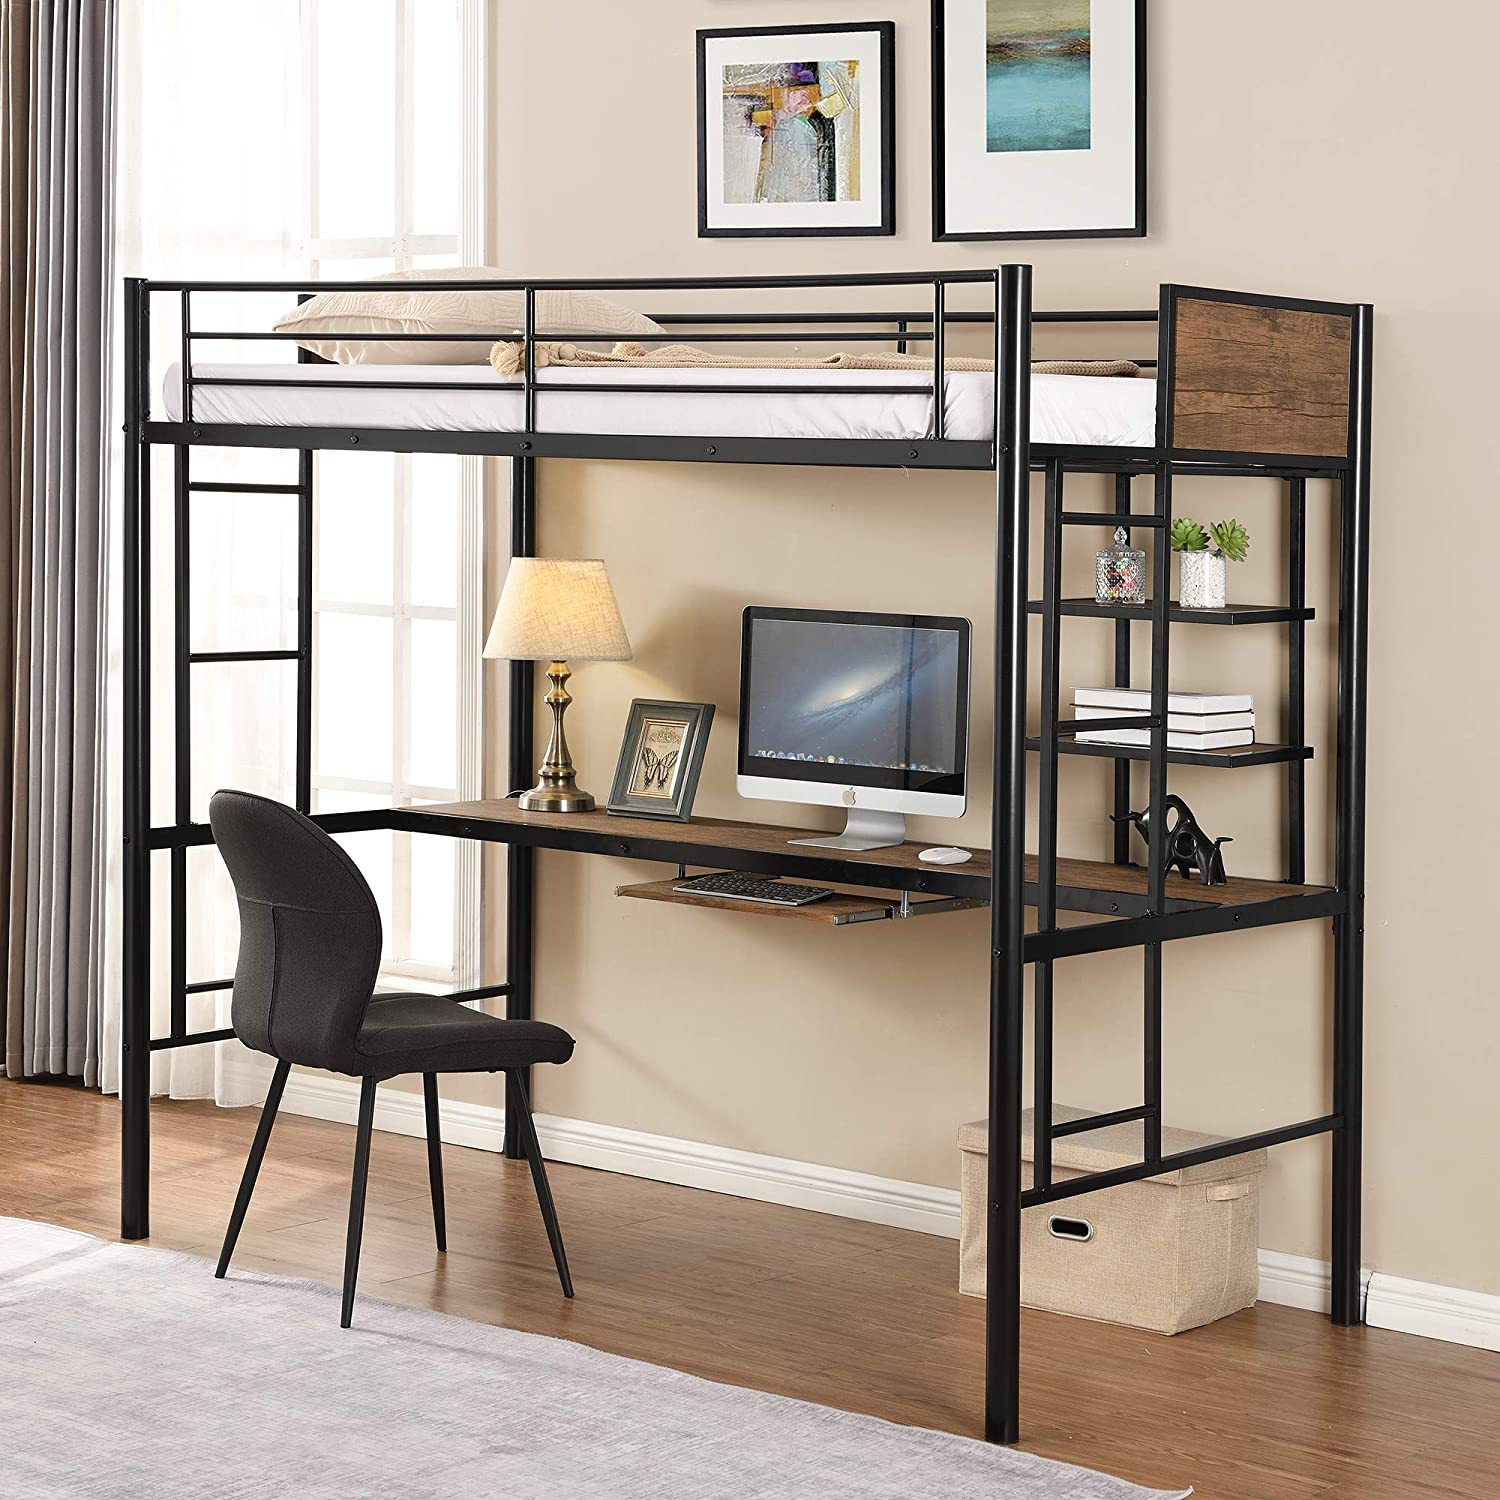 Metal Loft Bed Studio Loft Bunk Bed Over Desk and Bookcase with 2 Ladders and Keyboard Tray,Twin Loft Bed for Dorm, Boys & Girls Teens Kids, Black